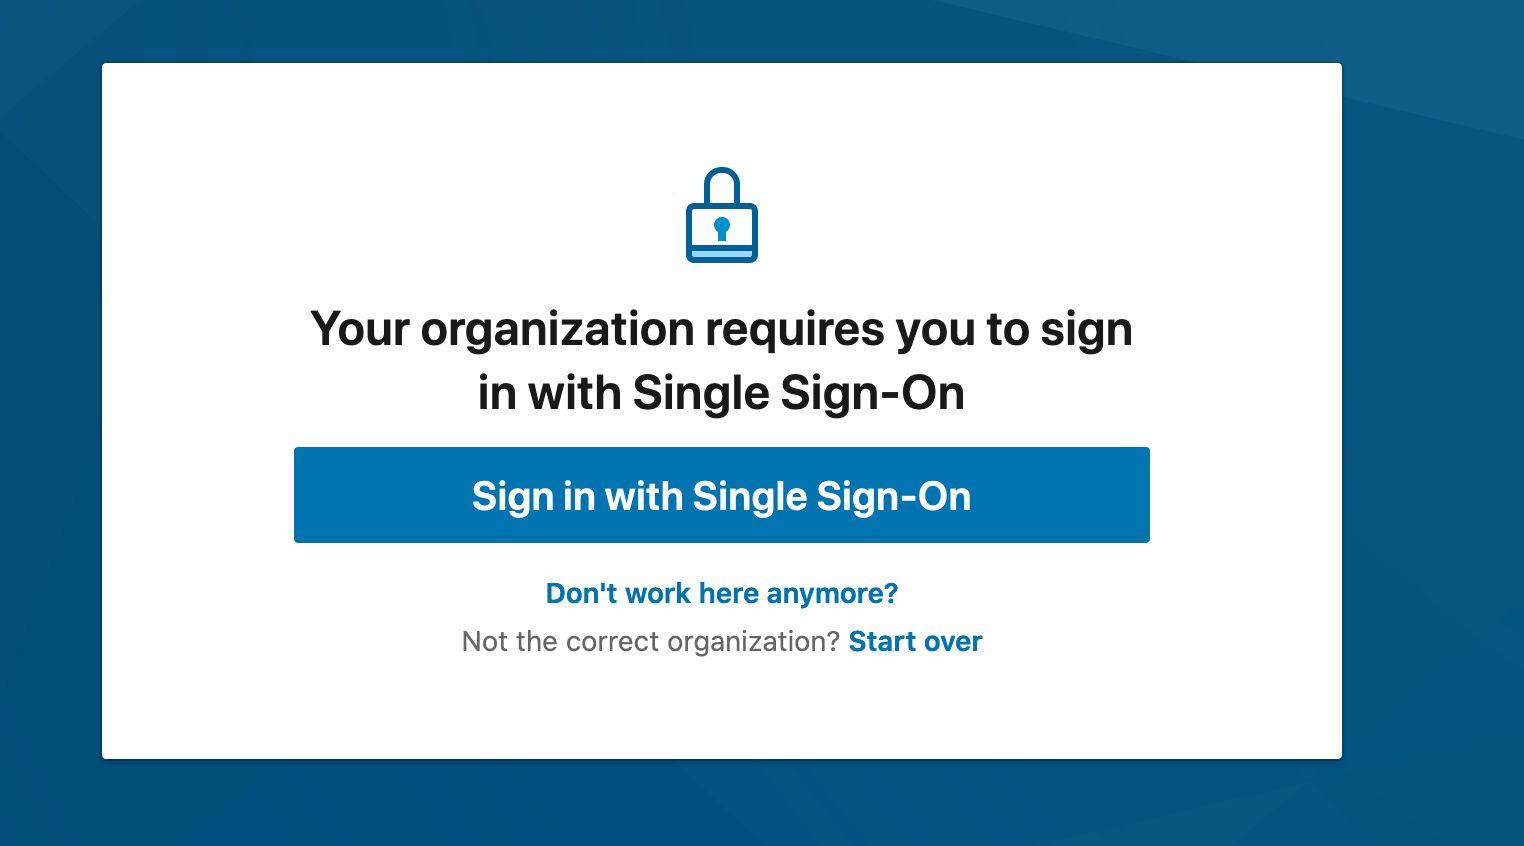 Sign in with Single Sign-On